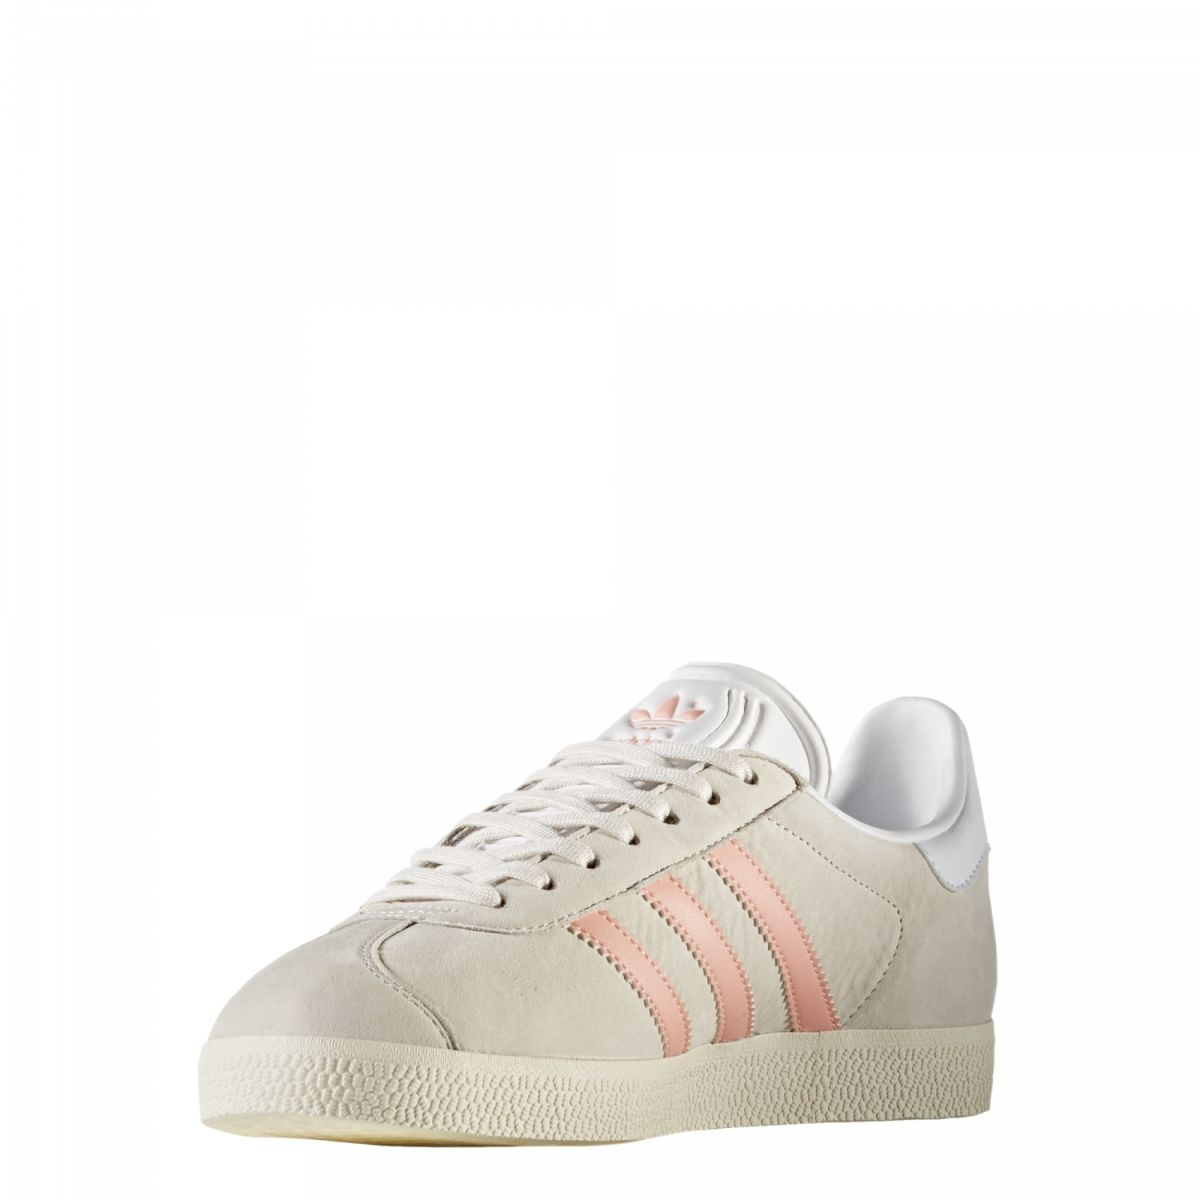 sport klingenmaier adidas originals gazelle sneaker damen schuhe beige rosa online kaufen. Black Bedroom Furniture Sets. Home Design Ideas